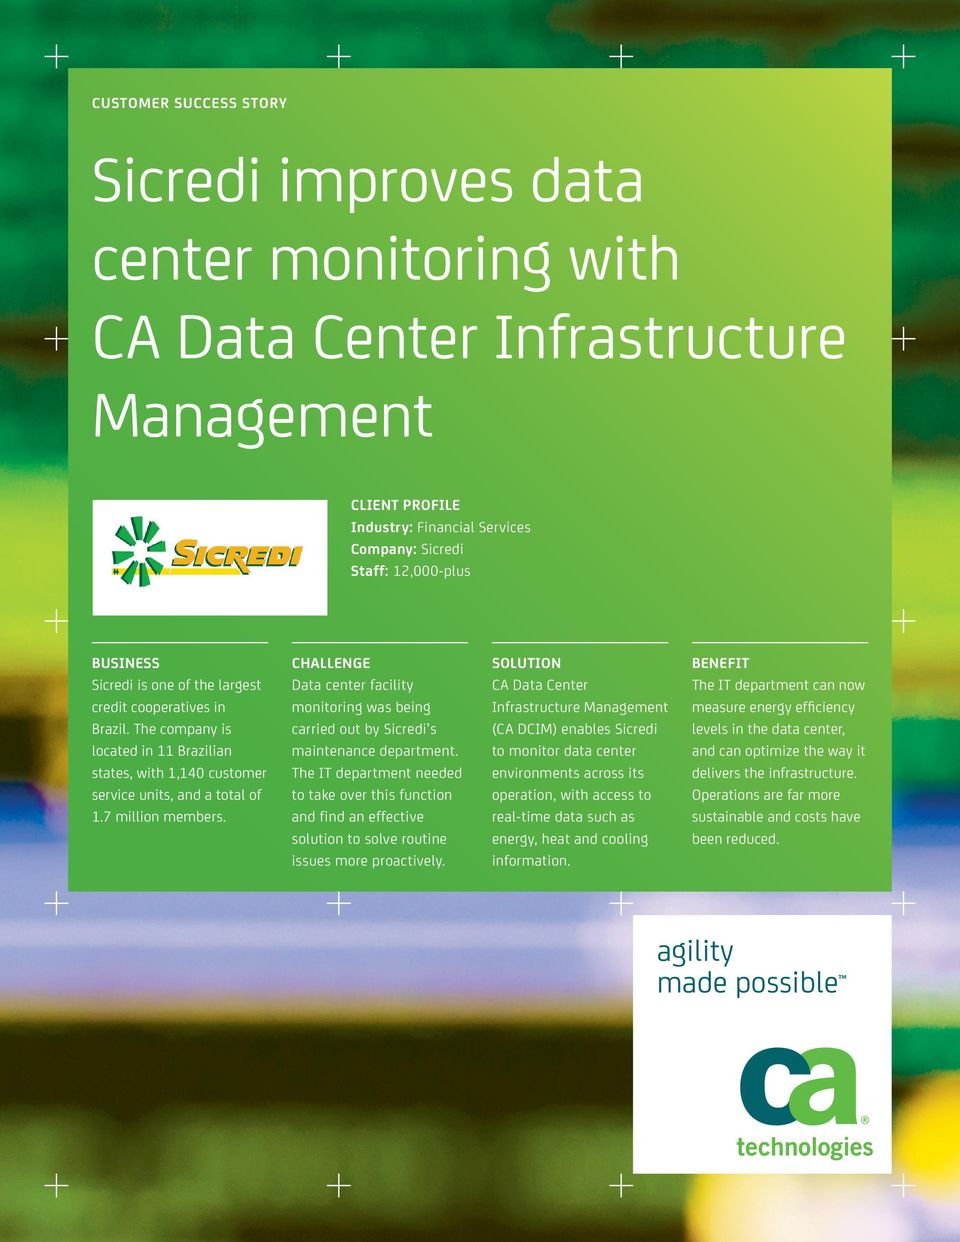 CHALLENGE Data center facility monitoring was being carried out by Sicredi s maintenance department.